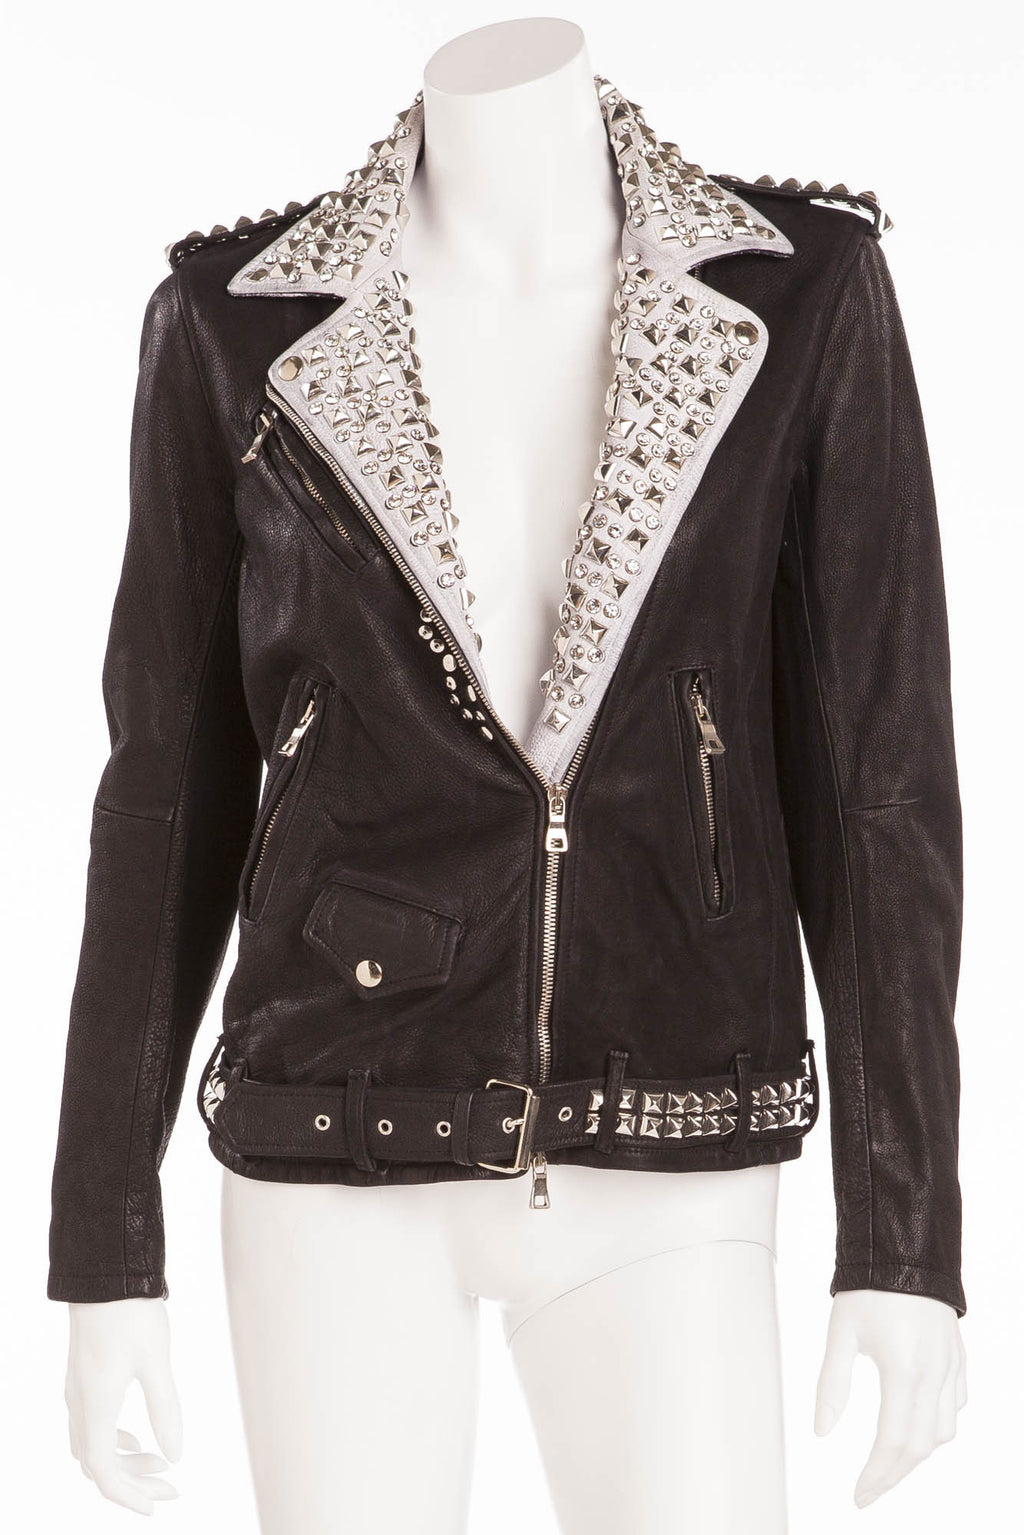 Balmain - Brand New with Tags Black Leather Jacket White Trim w/Silver Studs + Rhinestones - FR 40